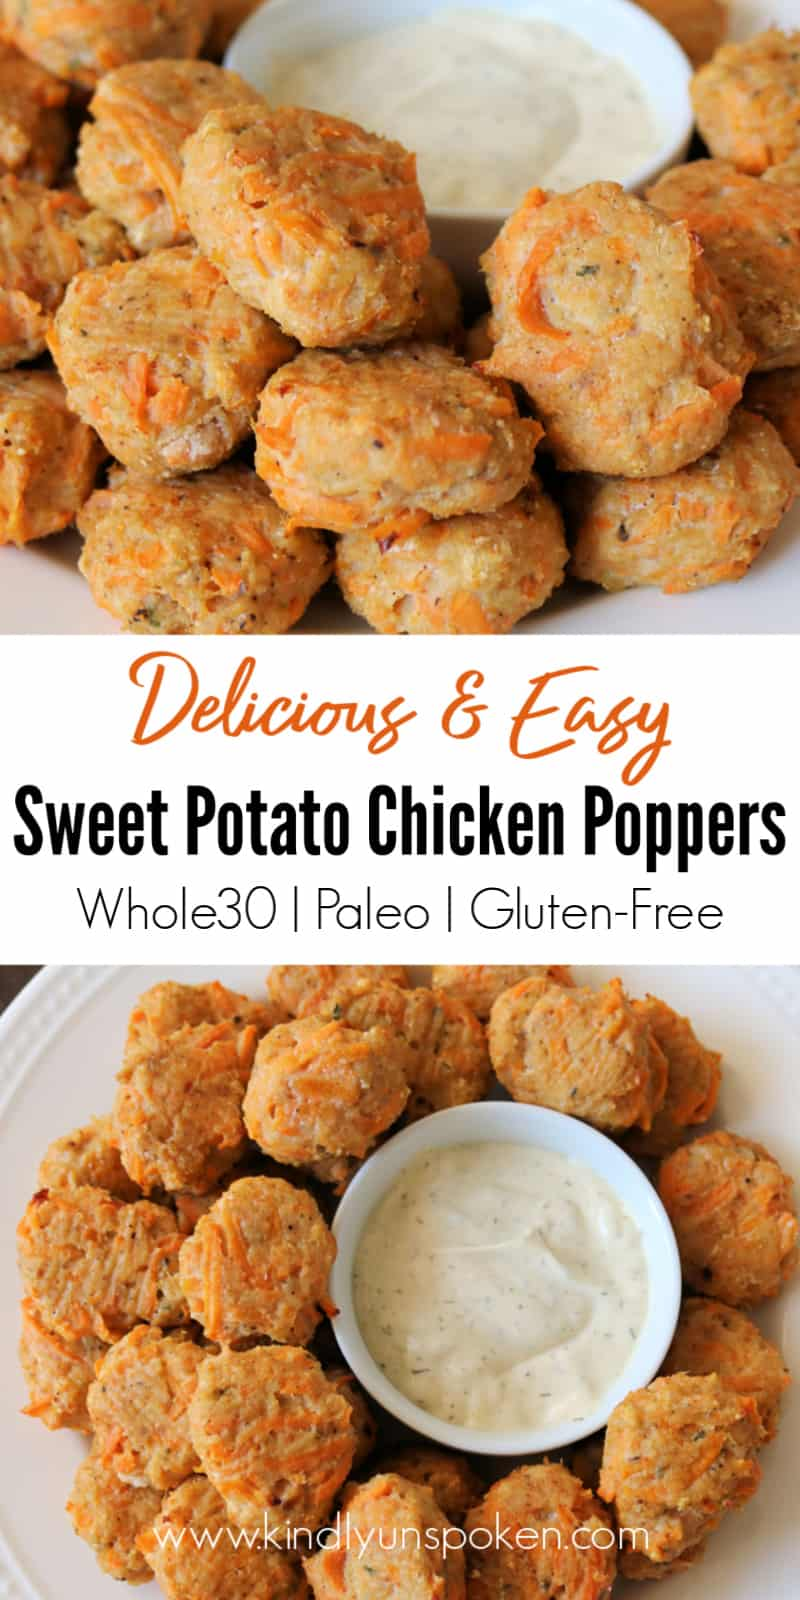 These Delicious Whole30 Sweet Potato Chicken Poppers are a healthy alternative to chicken nuggets and perfect for easy meal prepping! These easy chicken poppers are made with simple ingredients, take less than 30 minutes to make, freezer-friendly, and are gluten-free, Whole30, and Paleo approved. #chickenpoppers #chickenrecipes #whole30 #whole30chickenrecipes #paleo #glutenfree #healthyrecipes